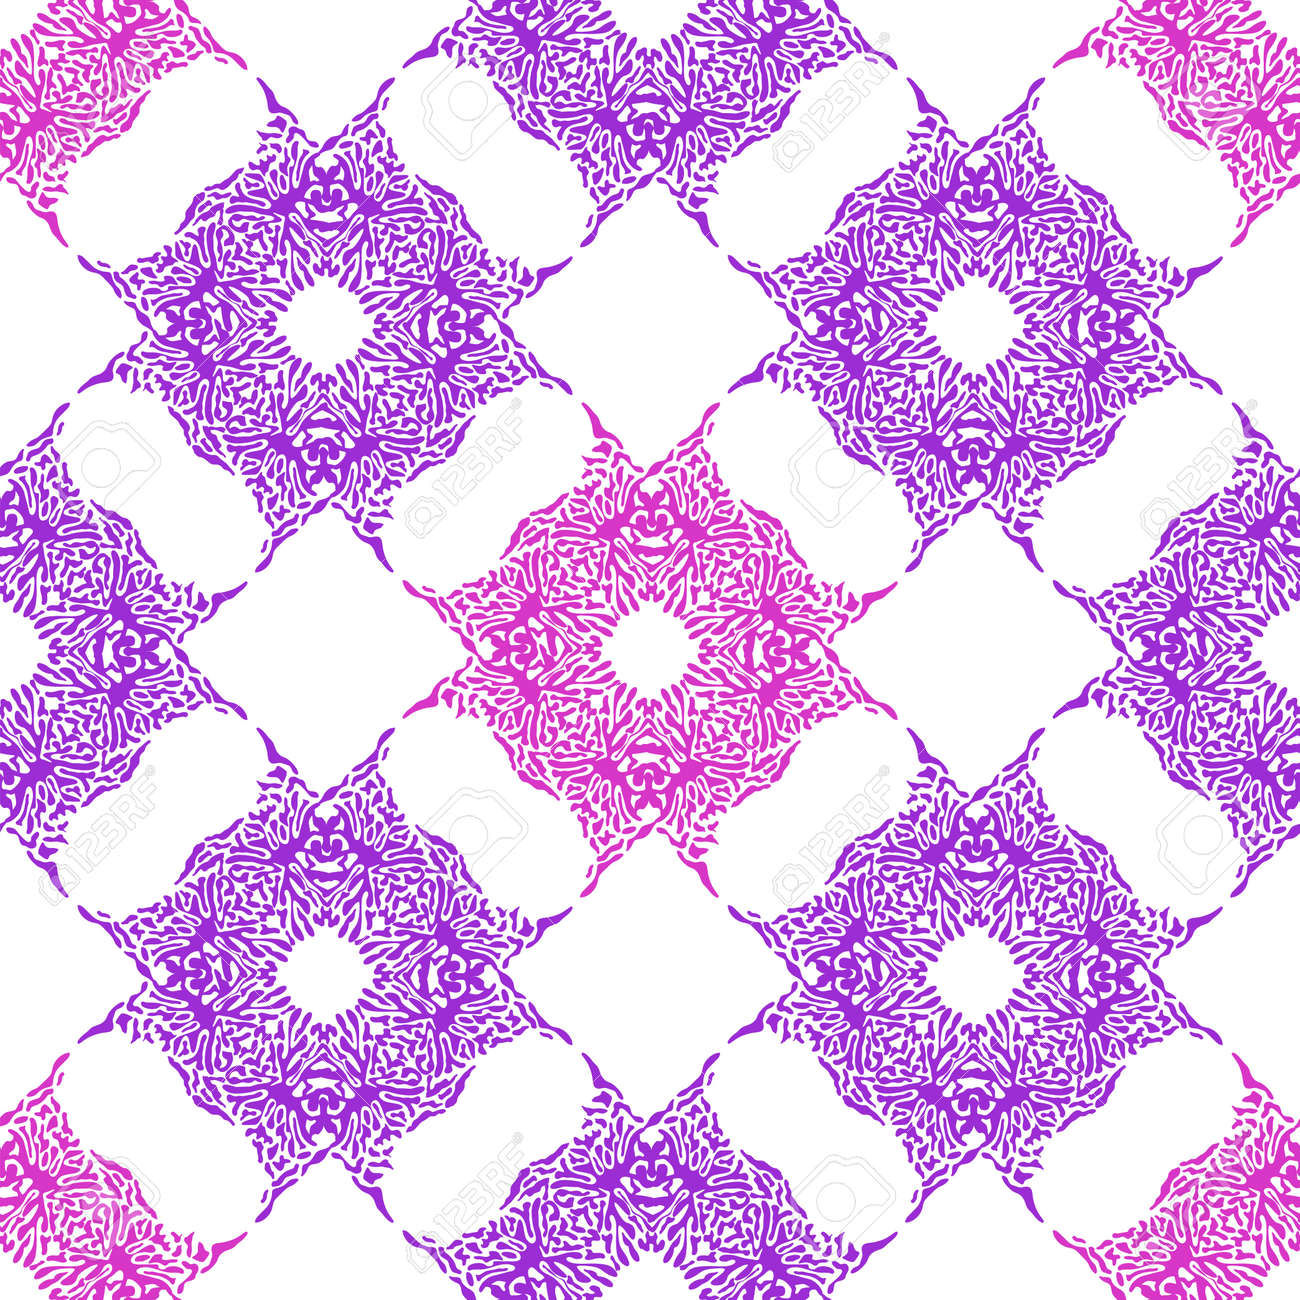 Abstract color splash, seamless pattern. Spray paint on a white background. - 170550045